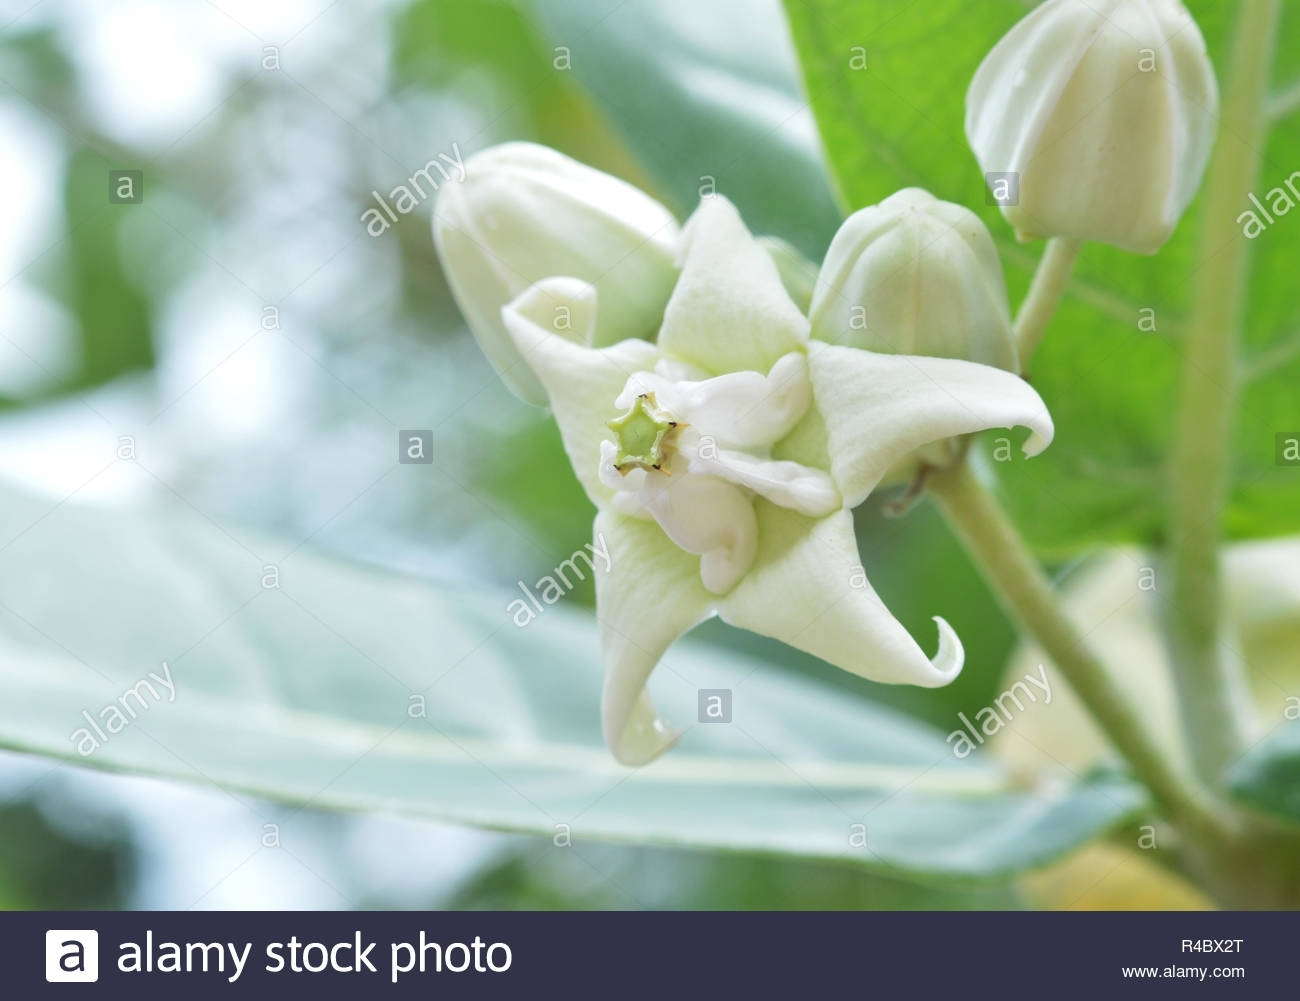 Indian Flower Names Stock Photos & Indian Flower Names Stock Images inside Garden Flowers Name In India